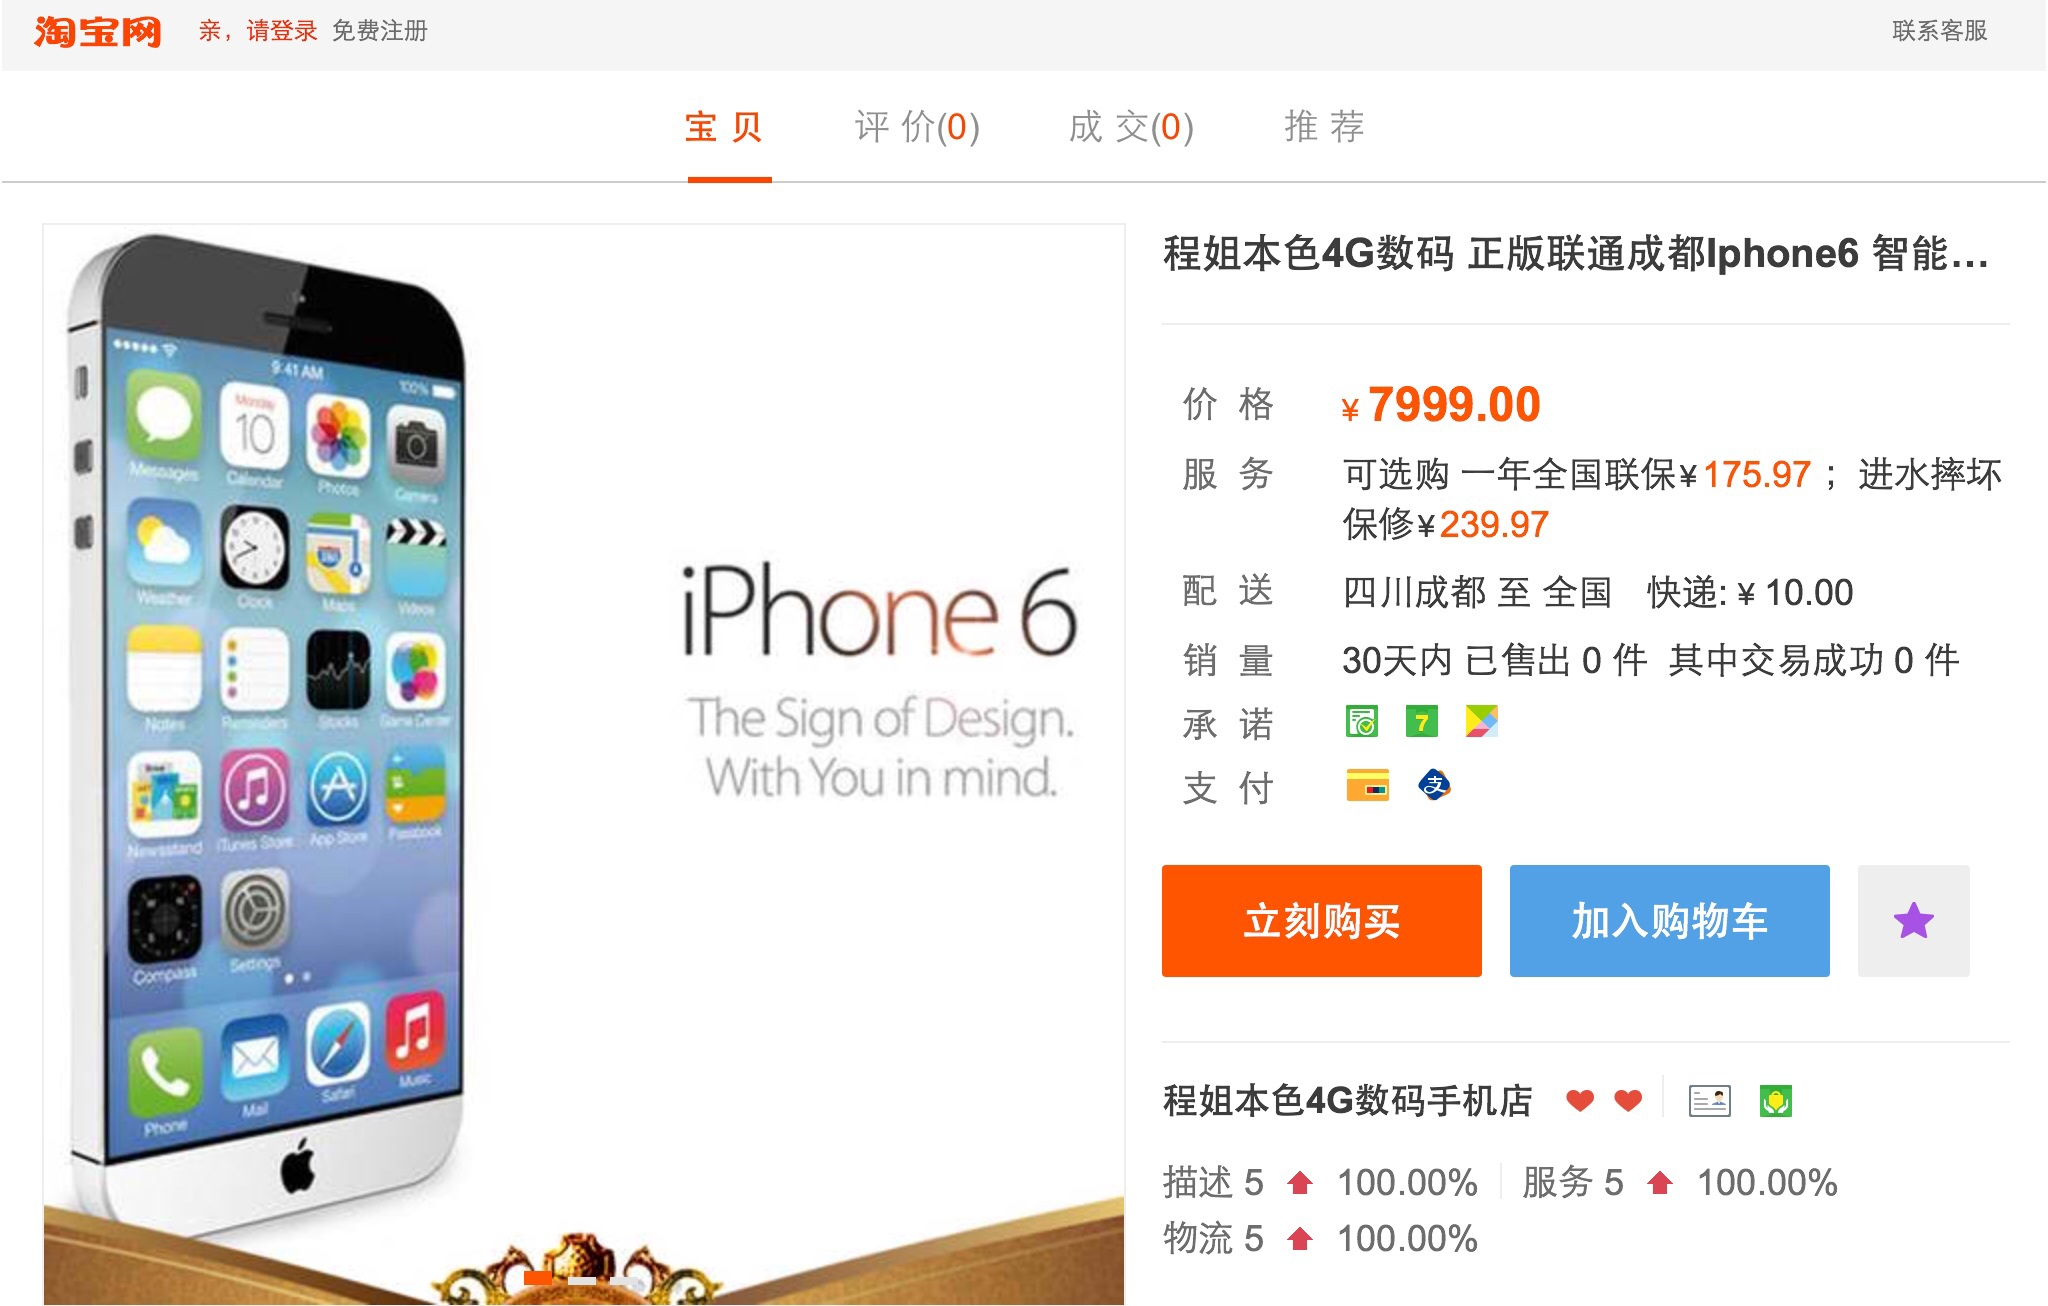 Preorders for Apple's 'iPhone 6' are now being offered by online sellers in China